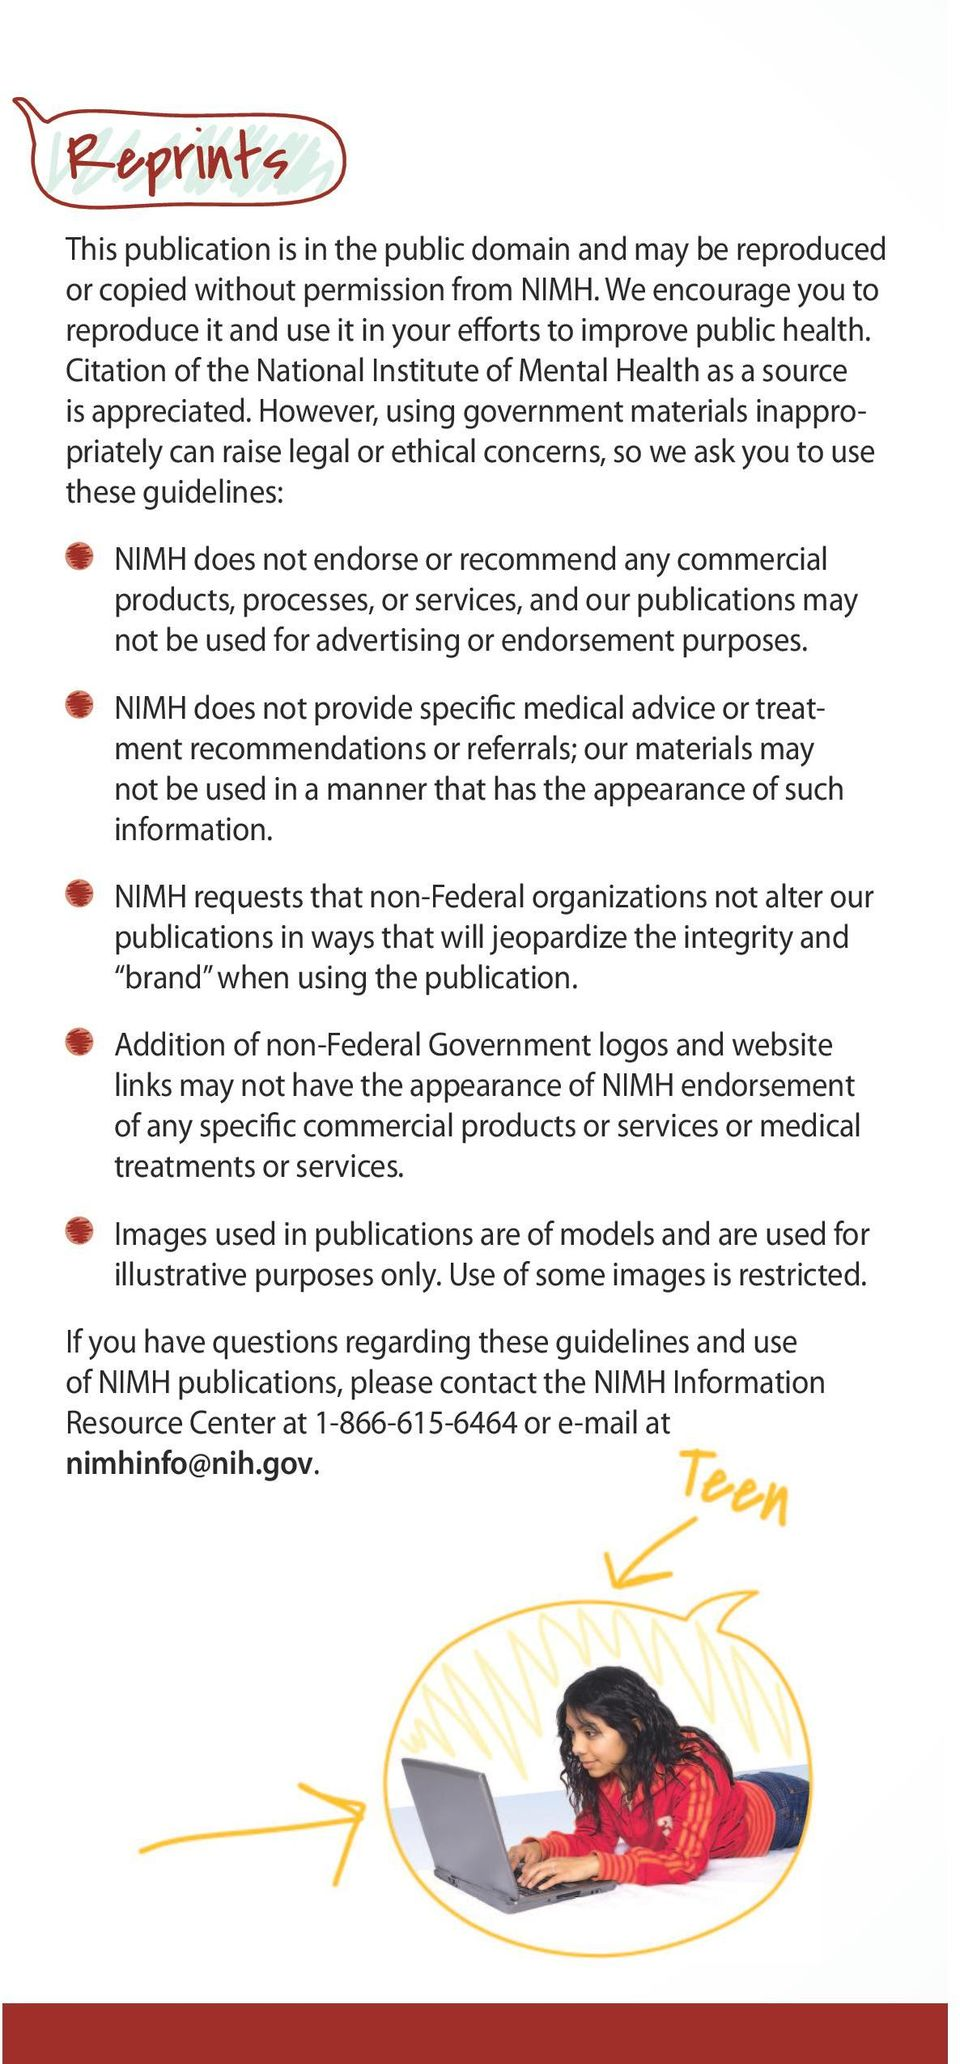 However, using government materials inappropriately can raise legal or ethical concerns, so we ask you to use these guidelines: NIMH does not endorse or recommend any commercial products, processes,